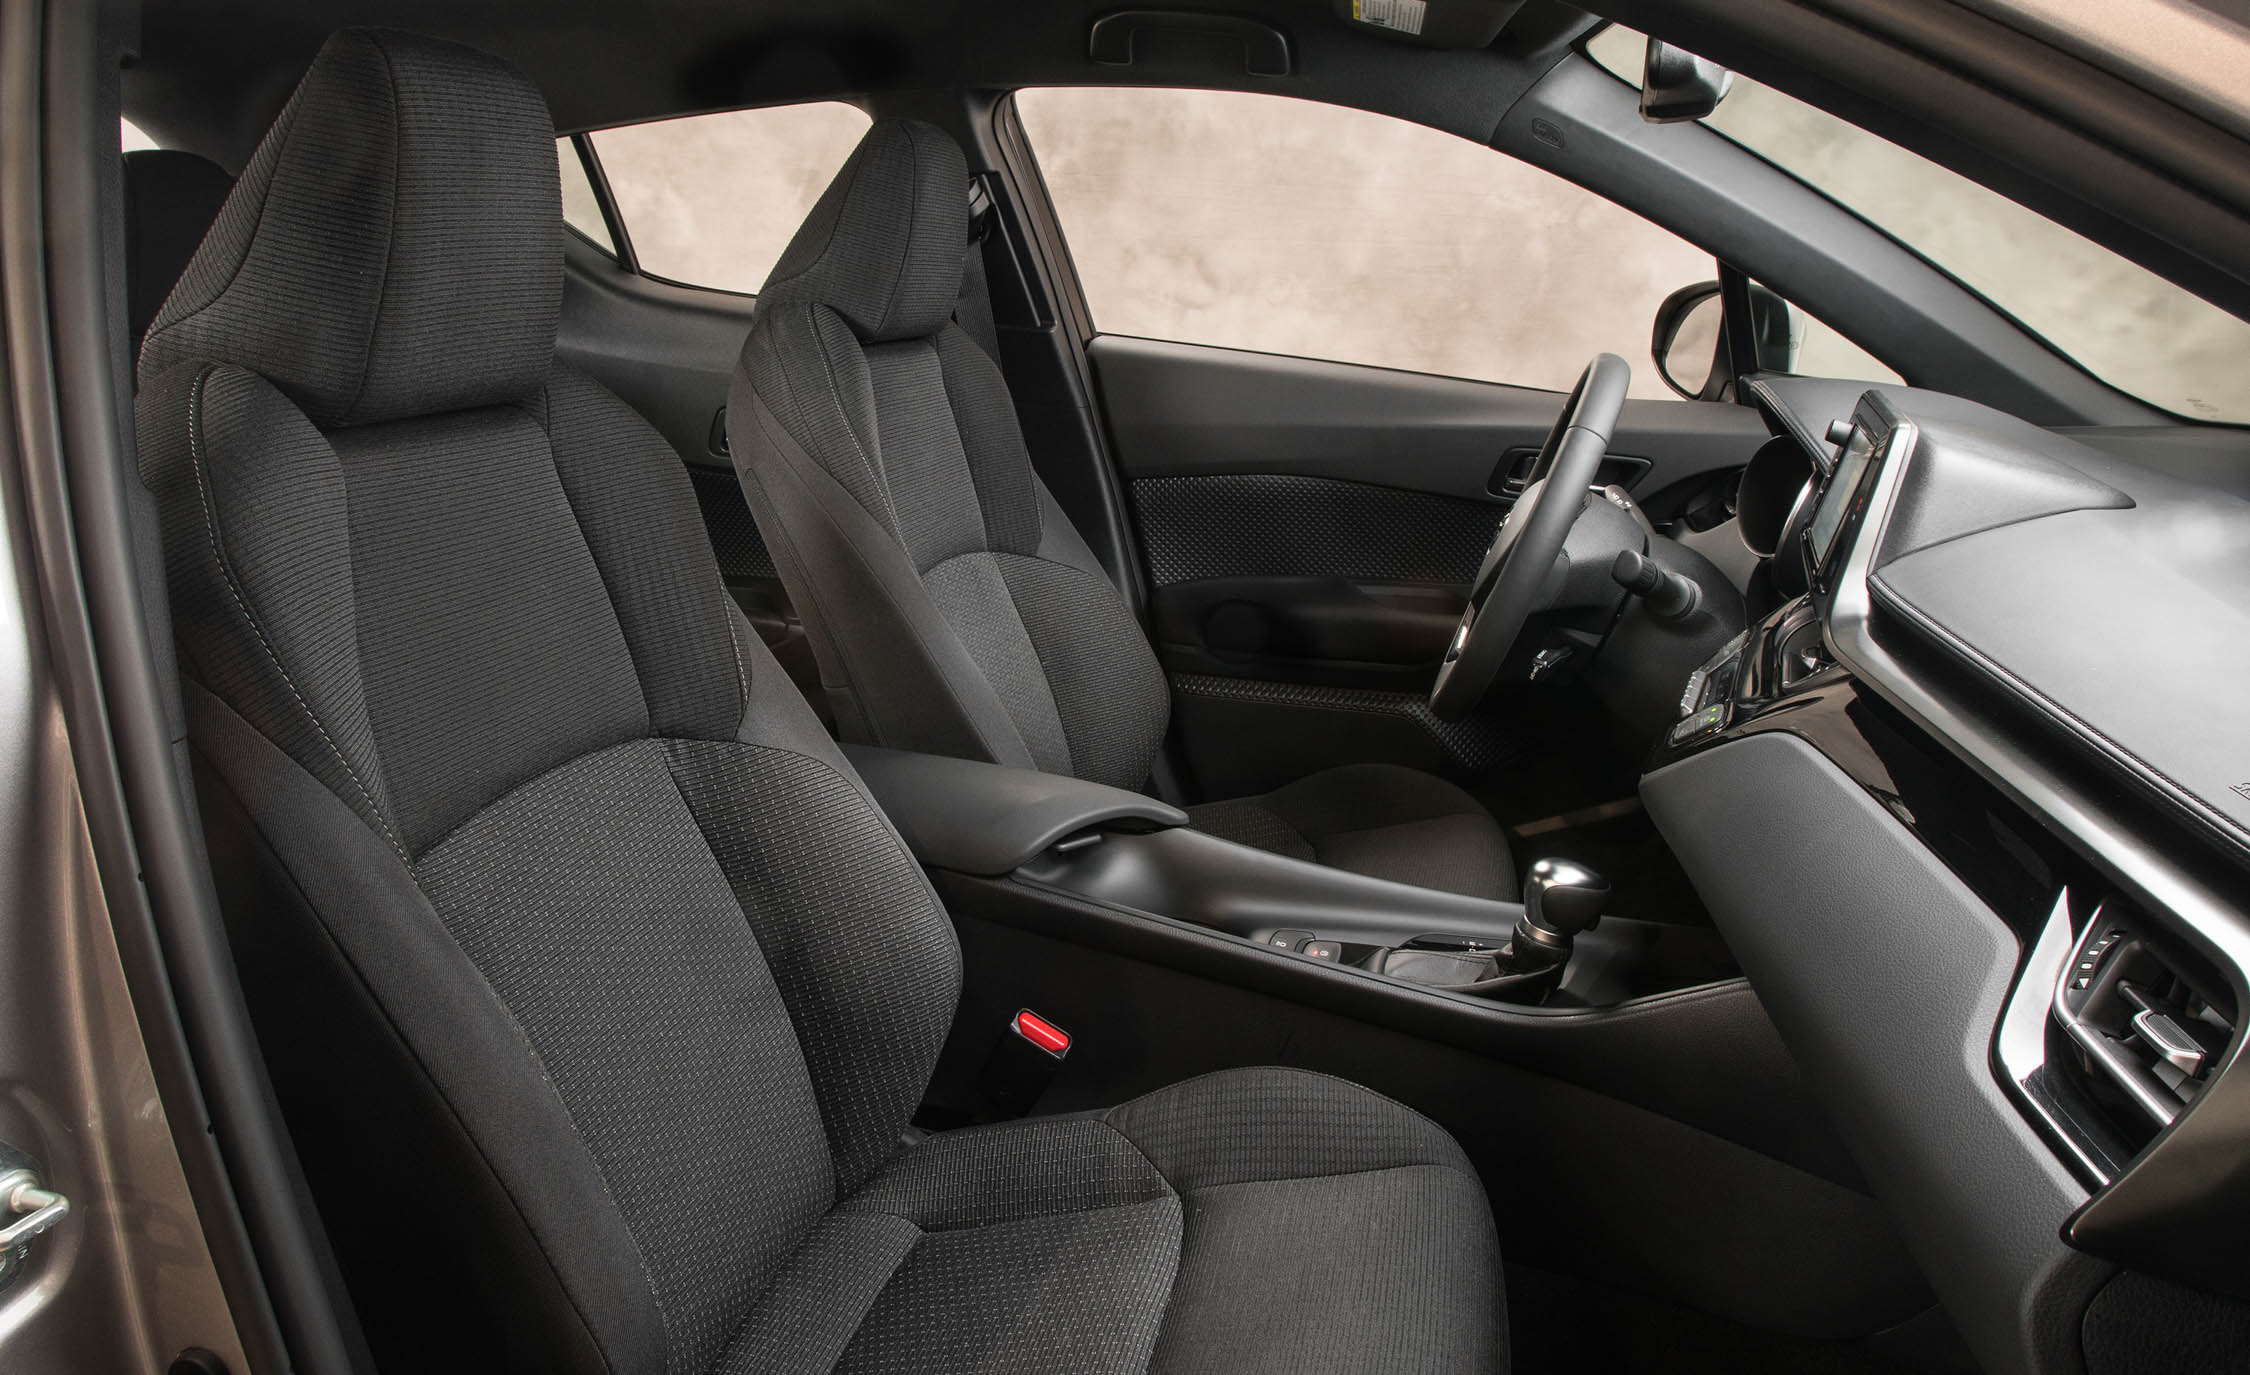 2018 Toyota C HR Interior Seats Front (Photo 13 of 33)